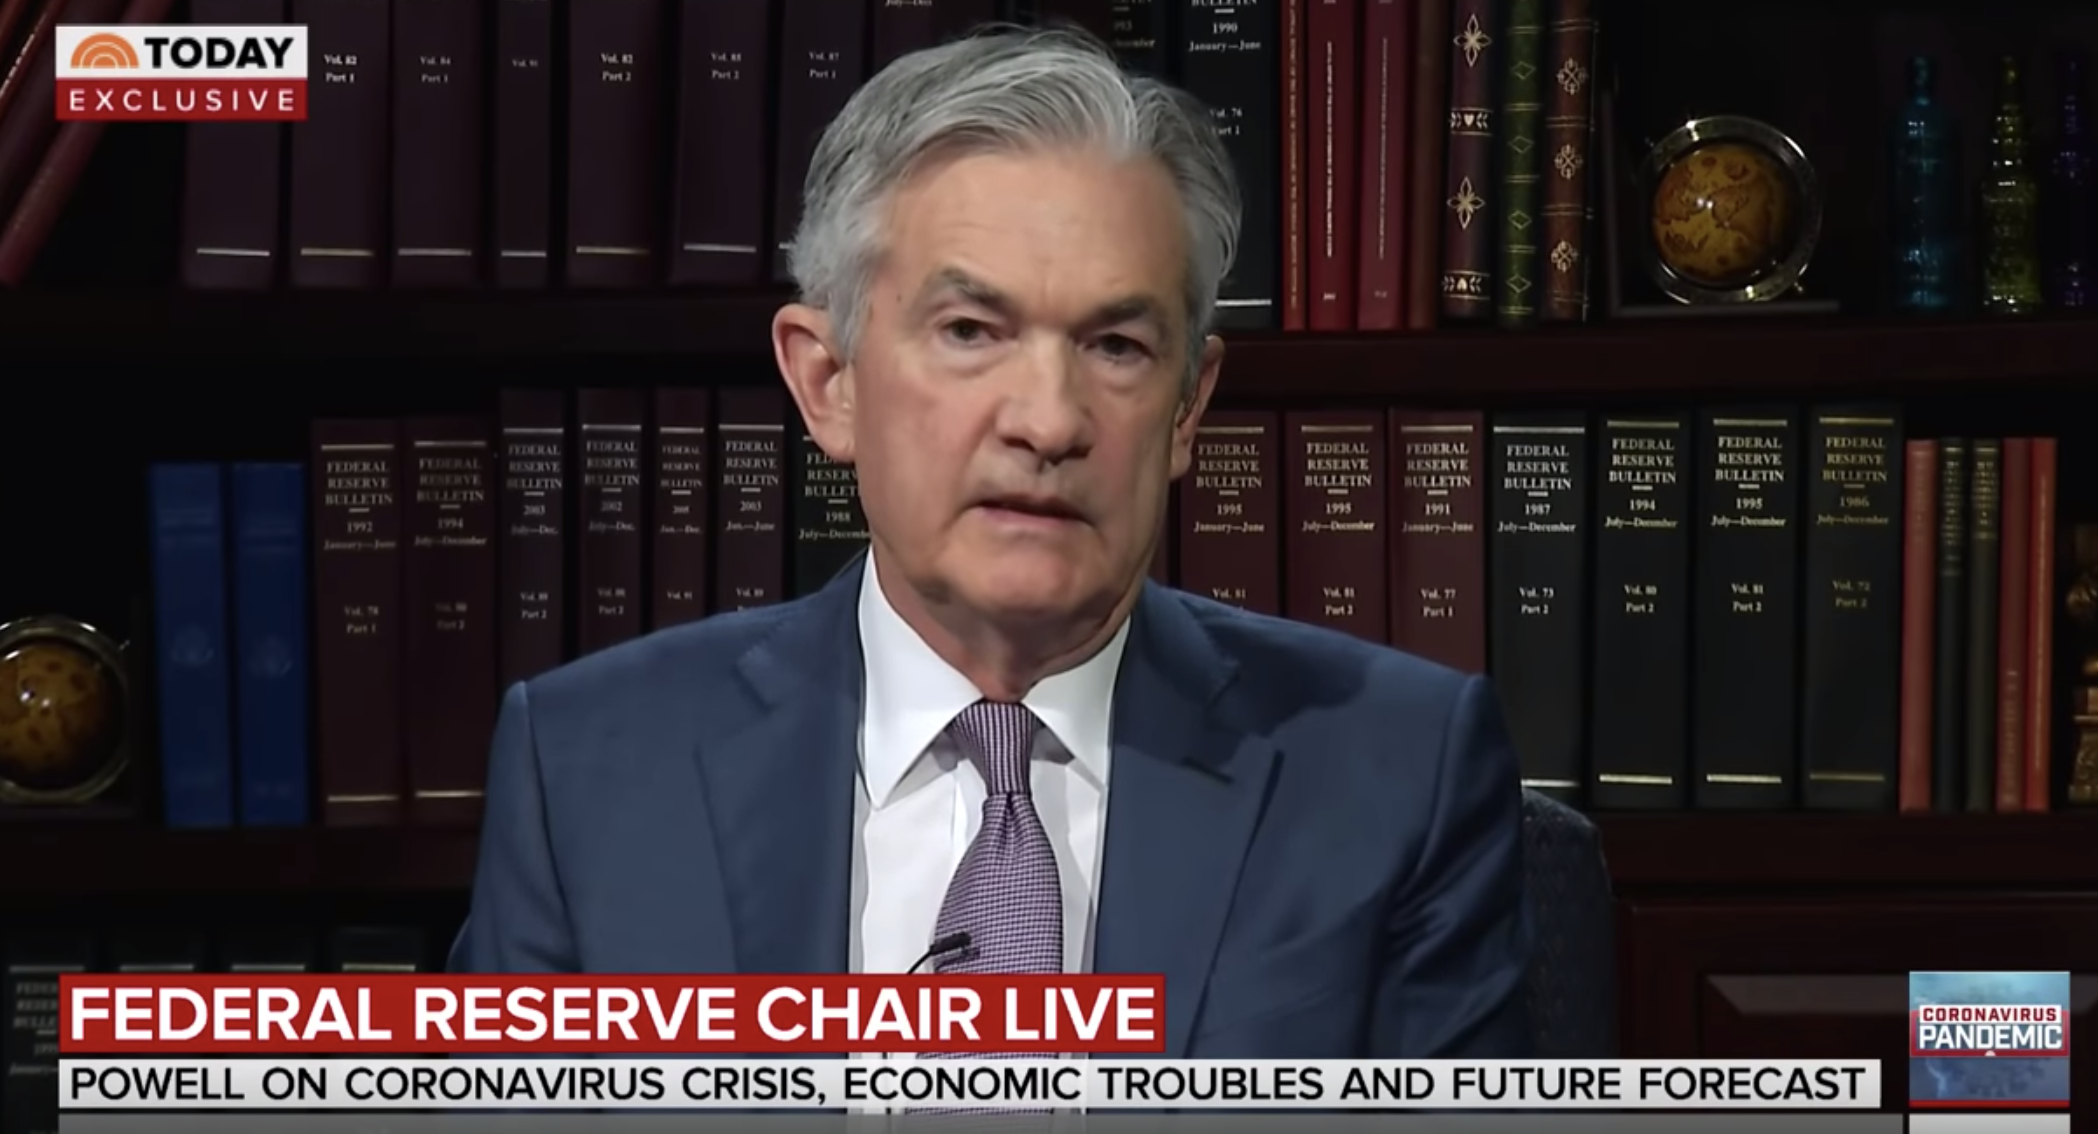 Federal Reserve Chairman Jerome Powell on the Today Show, 26 March 2020